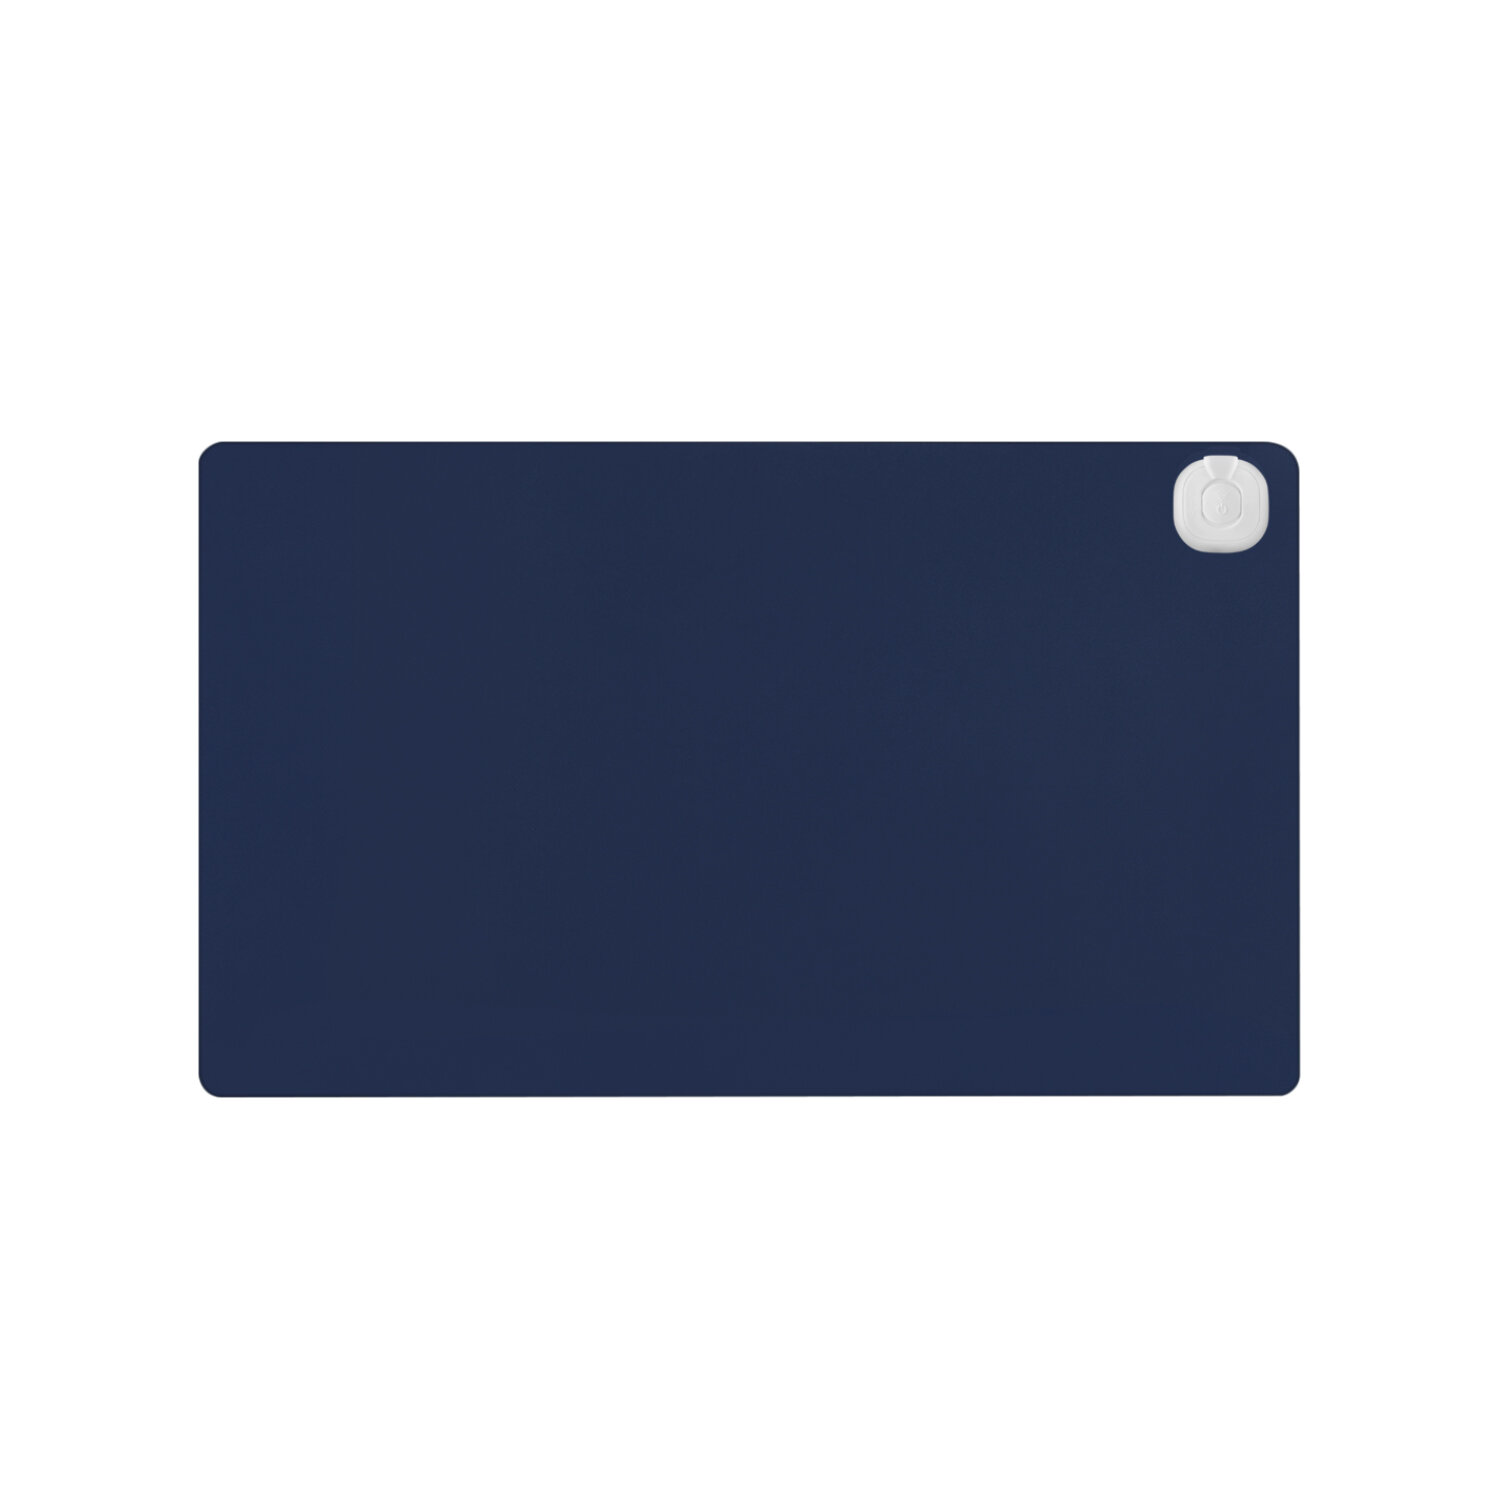 BUBM JRZD-B Heating Pad Desktop Mouse Pad Warm Table Mat Electric Heating Plate Writing Mat for Office Home